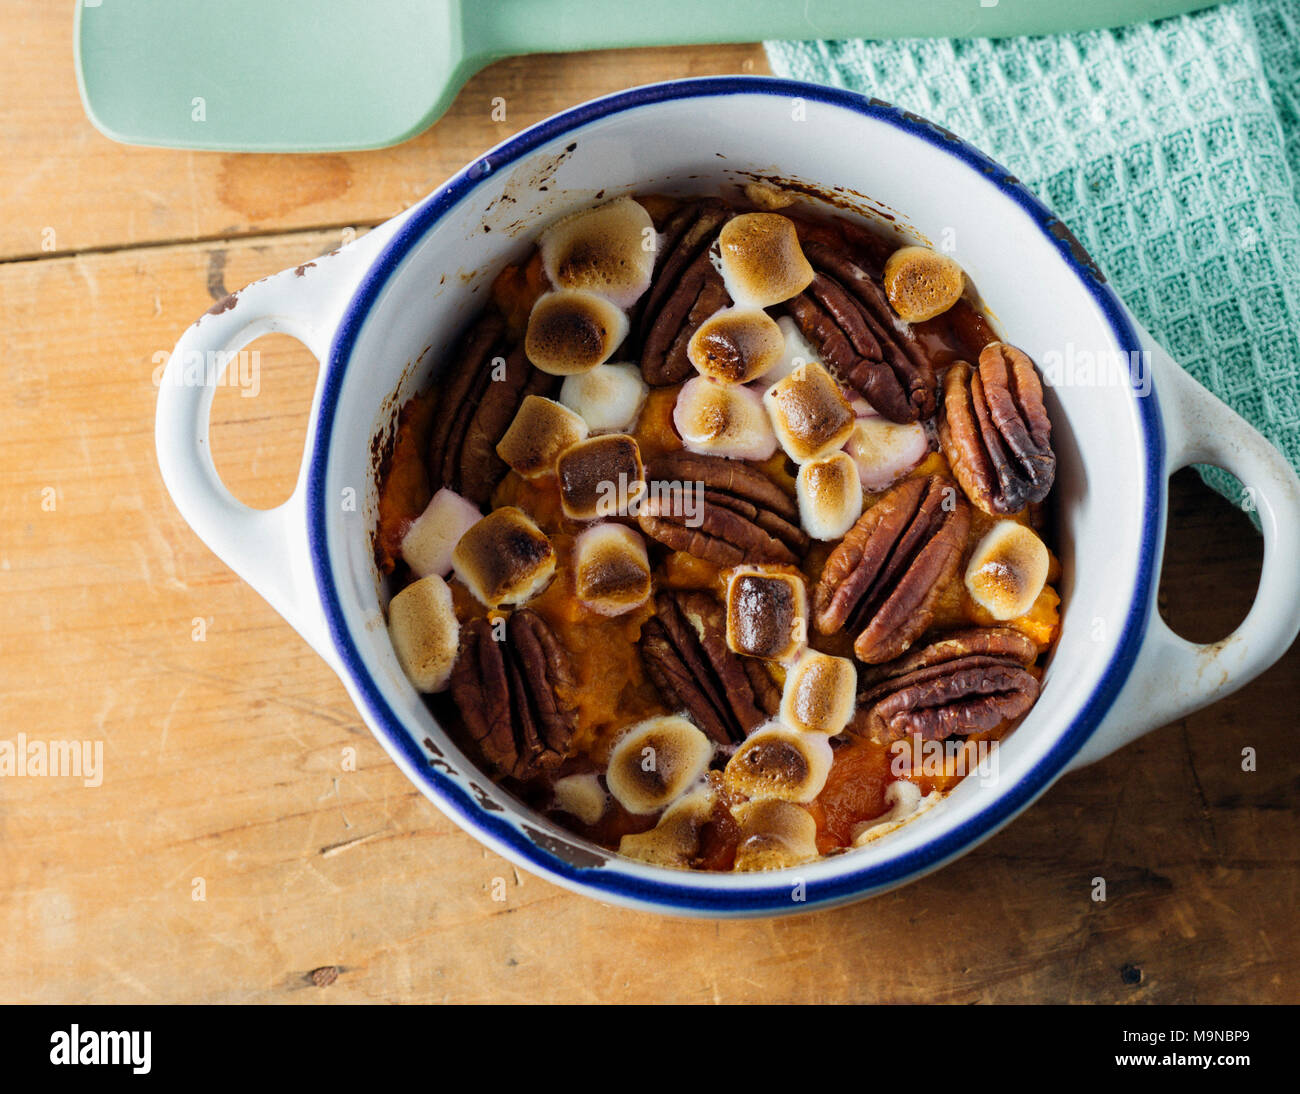 Sweet Potato with Marshmallow and Pecans - Stock Image